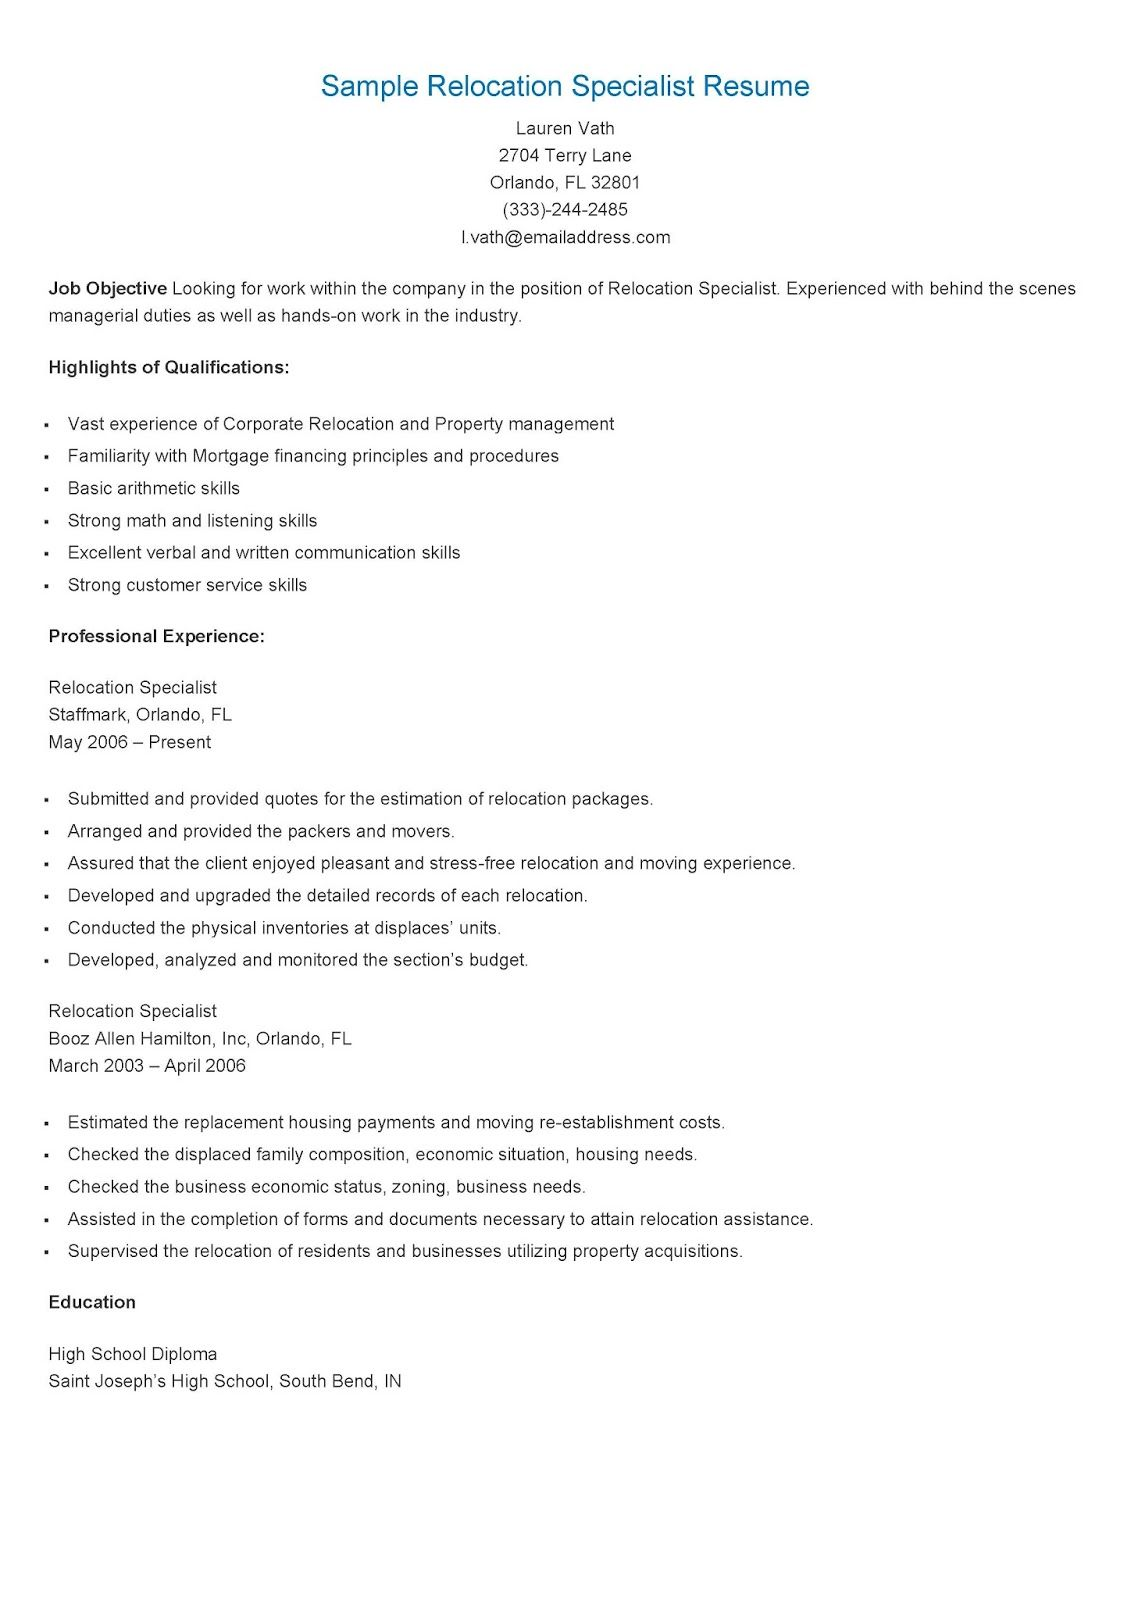 sample relocation specialist resume